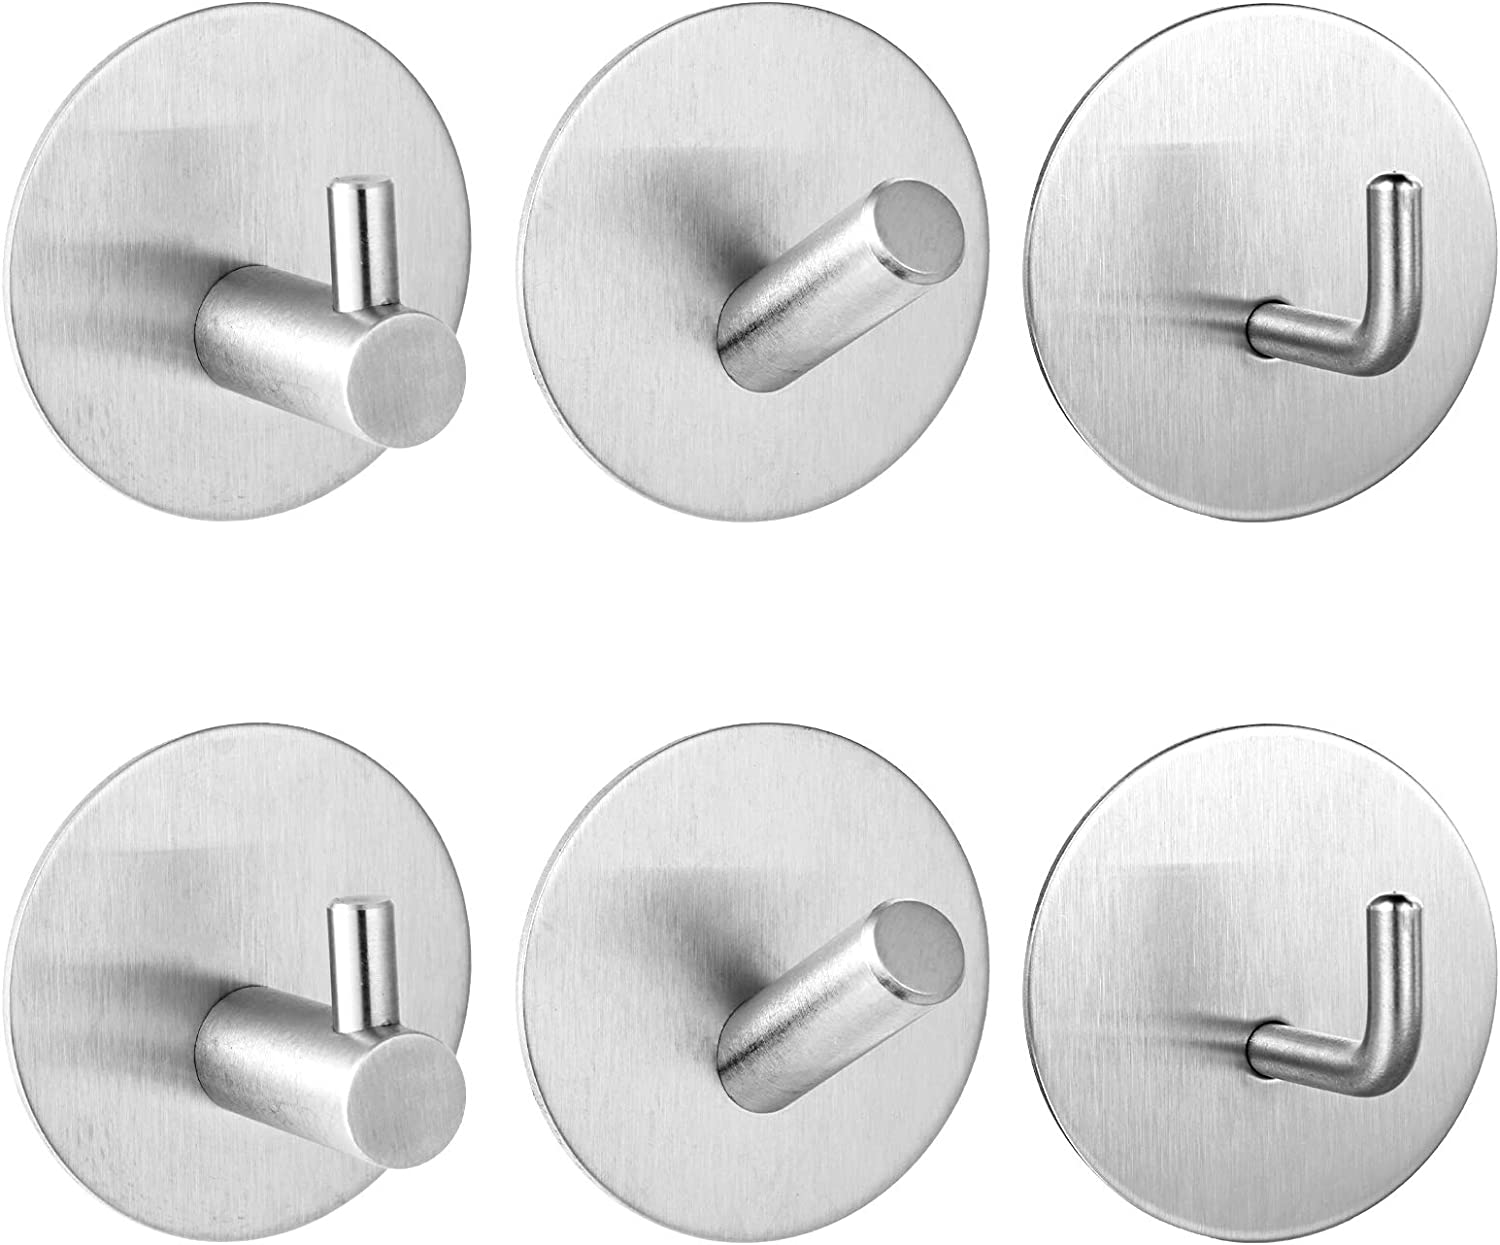 QWDLID 6 Packs Adhesive Hooks Animer and price revision Sticky Hook Translated Wall Coat Waterproof